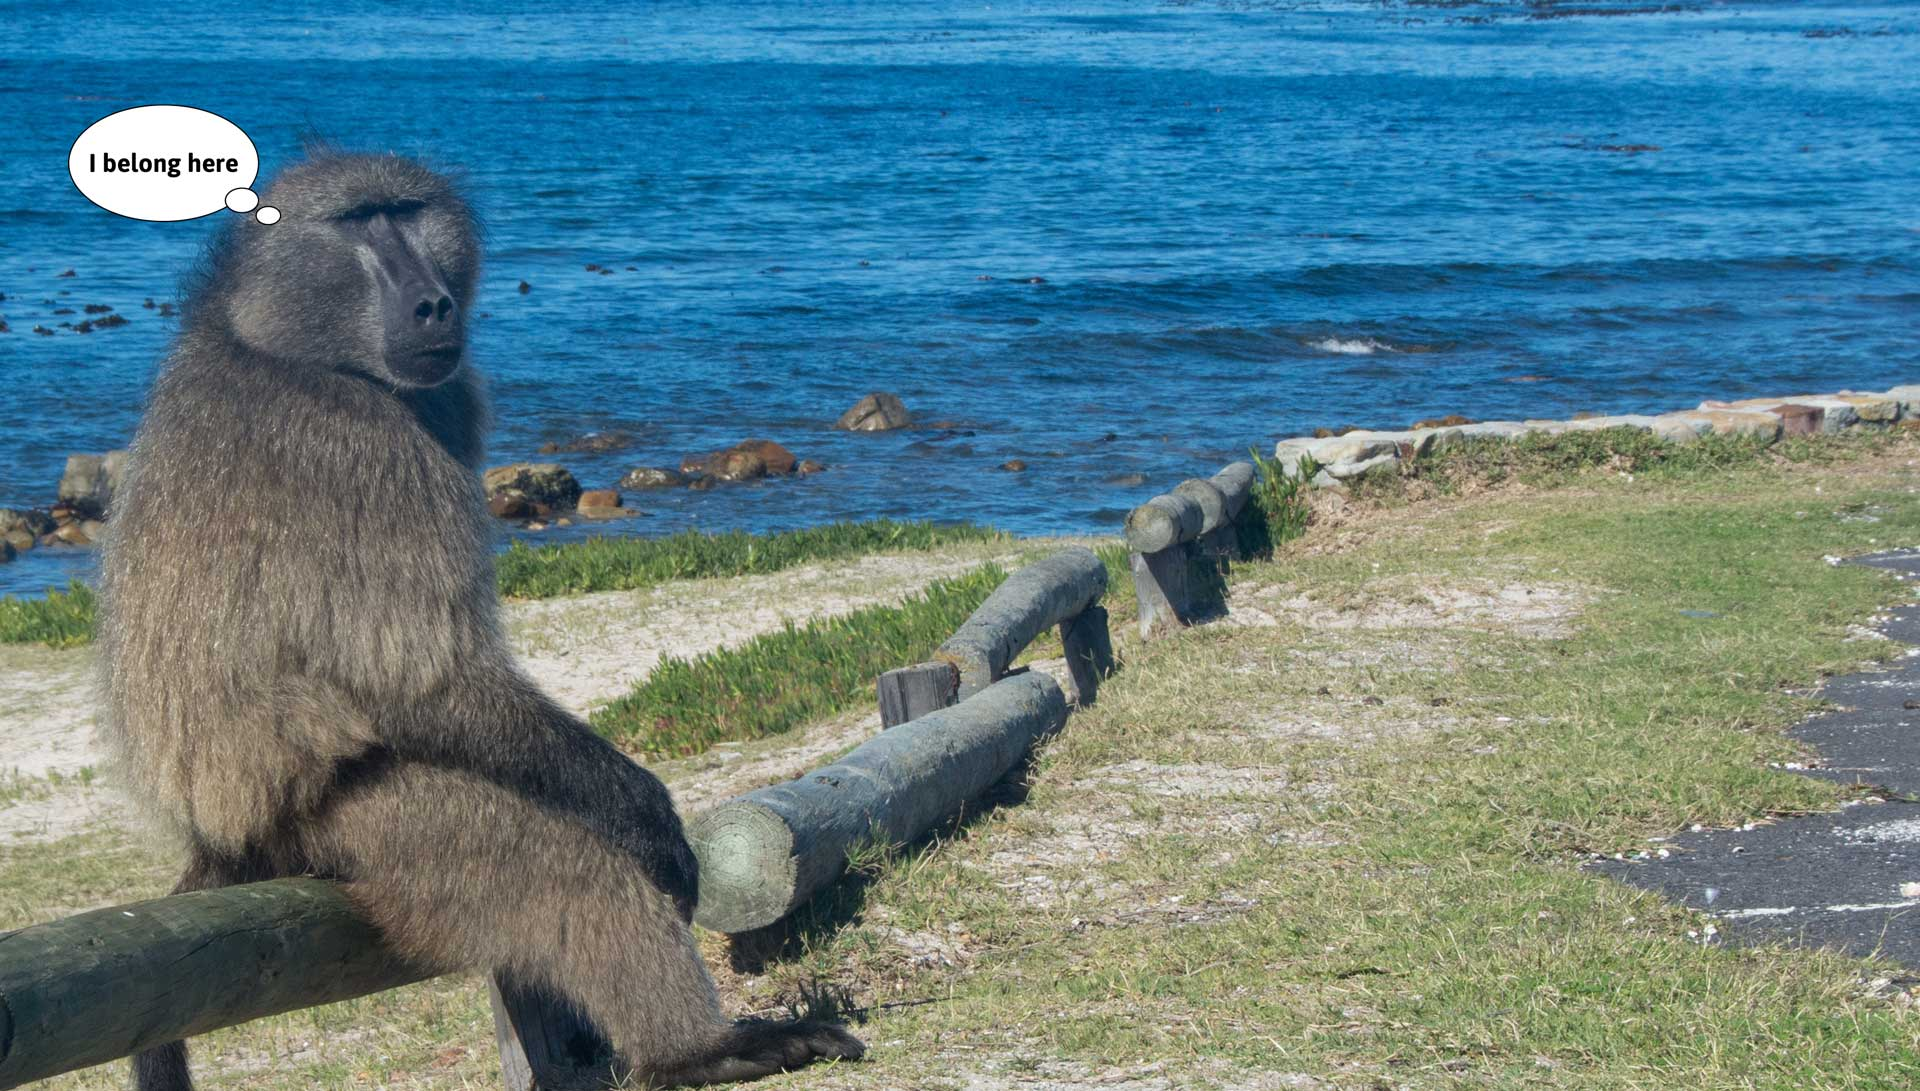 Let's stop the cruel management of baboons in the Western Cape